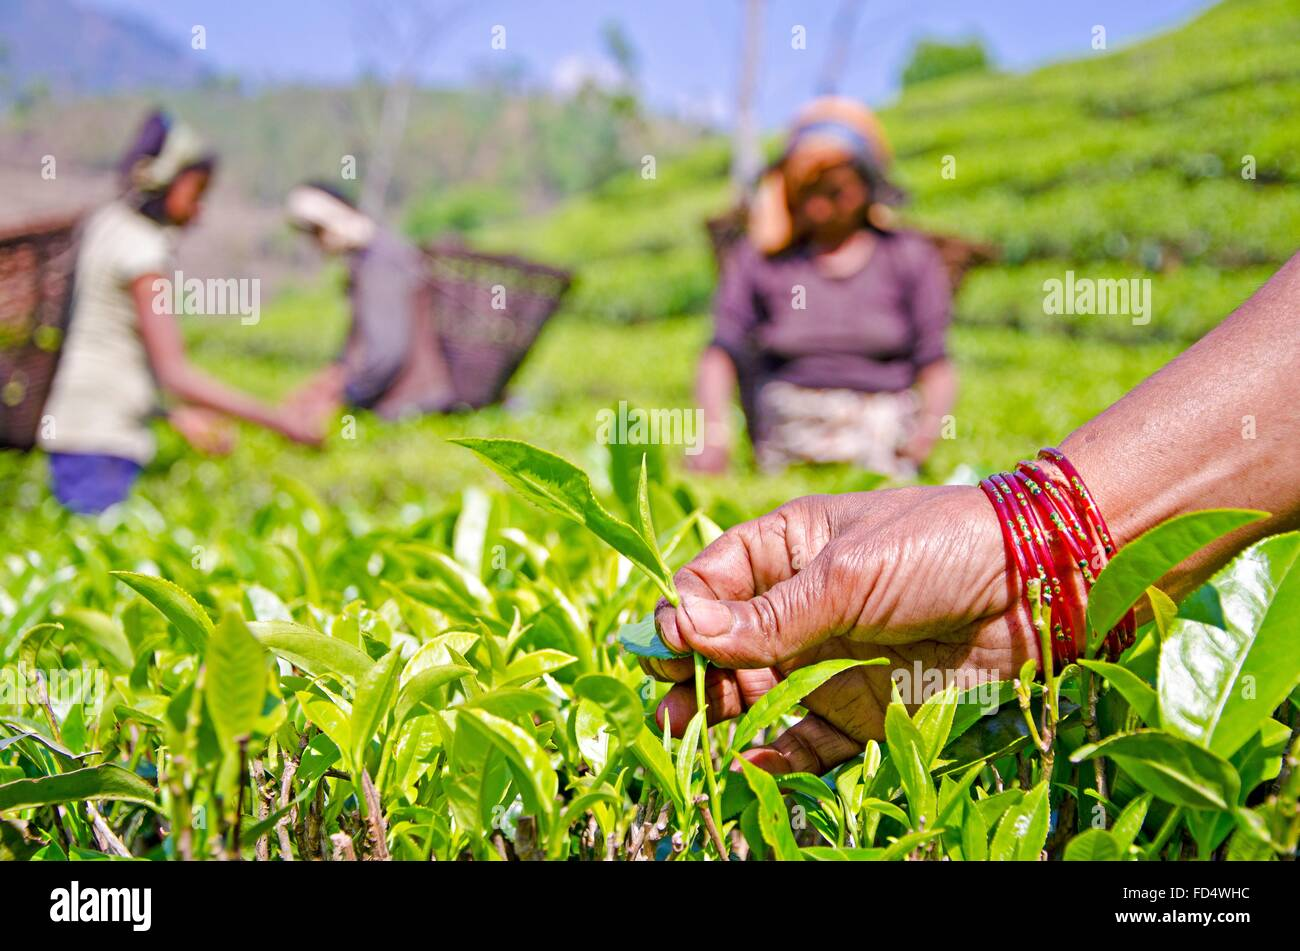 Women workers belonging to the EcoTea Cooperative pluck the first flush of organic tea on a farm March 31, 2013 - Stock Image